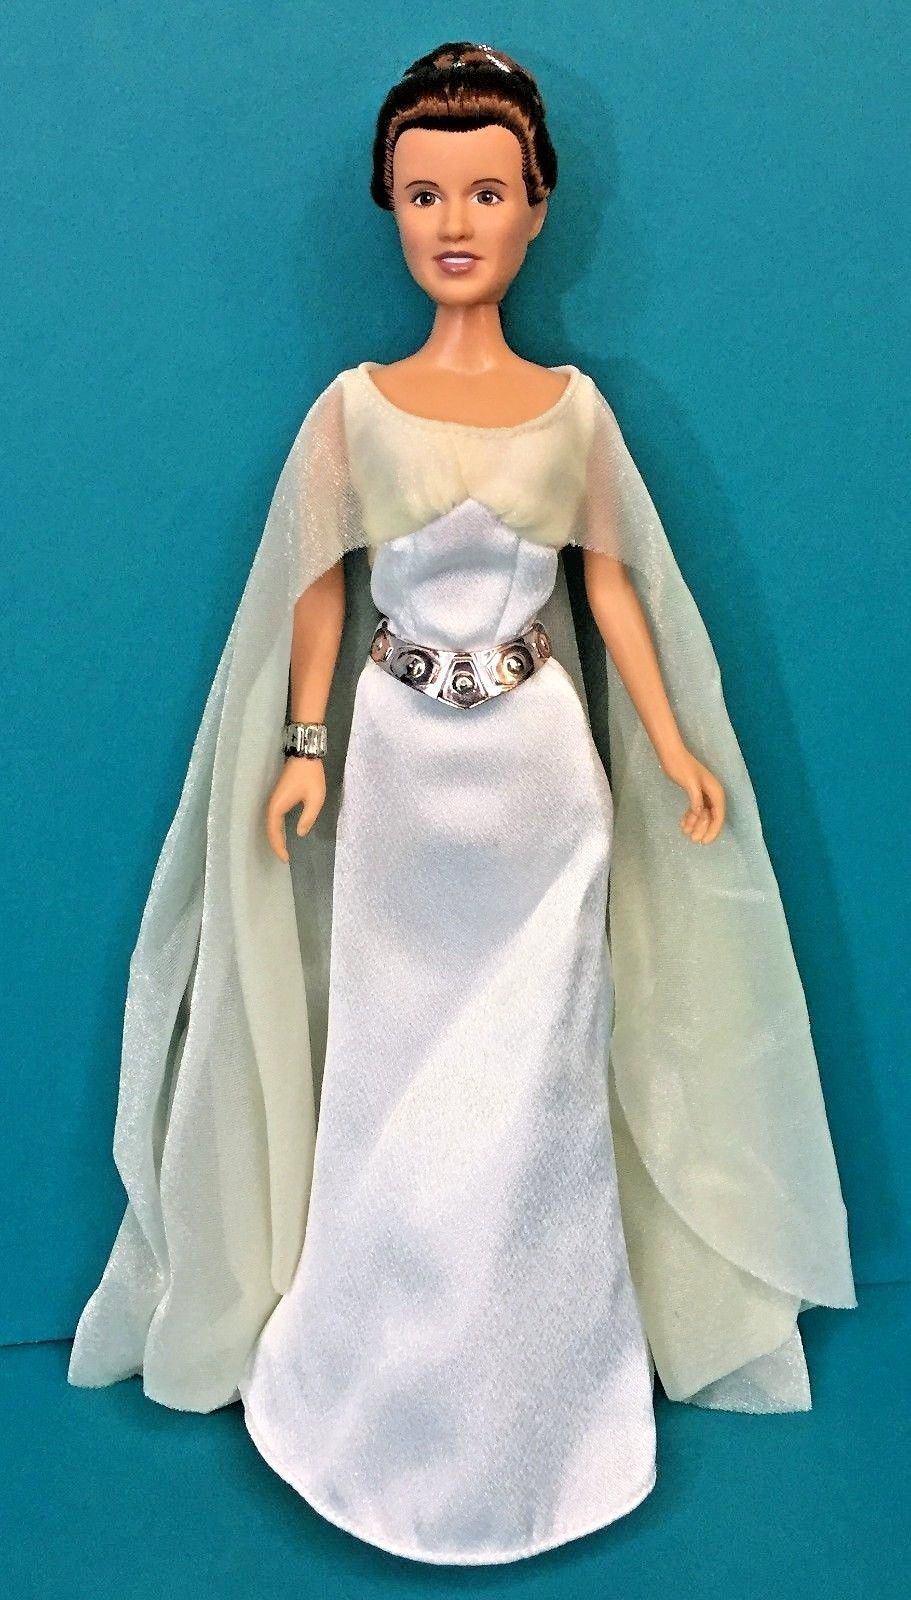 Star Wars Princess Leia Ceremonial Gown and 50 similar items